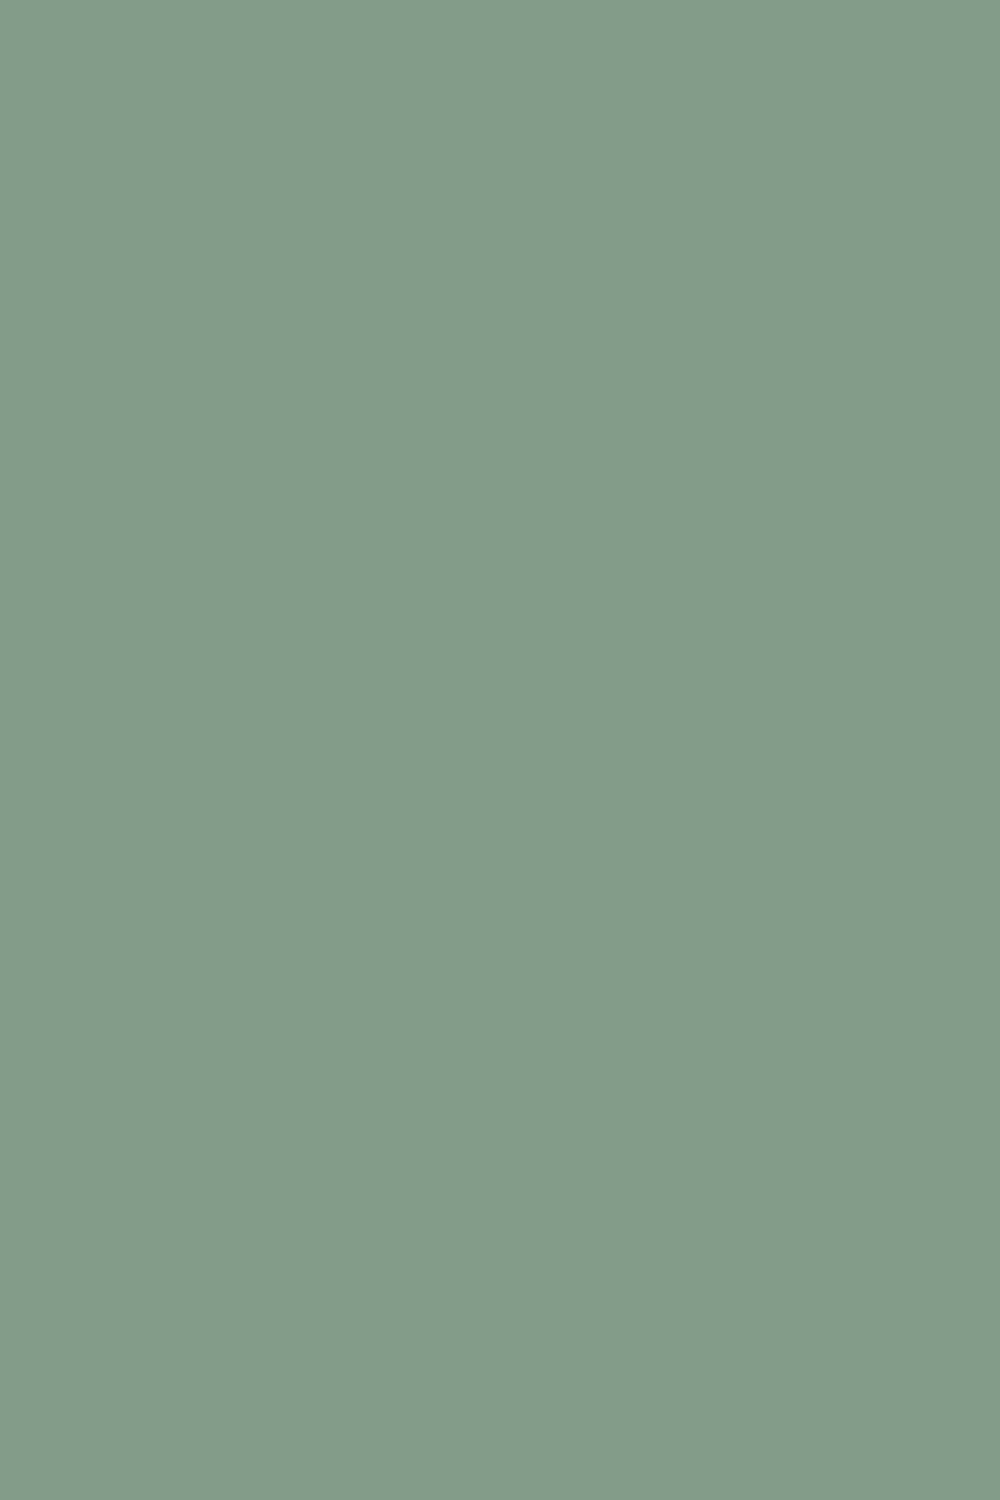 Chappell Green Paint Colours Farrow Amp Ball Bedroom Or